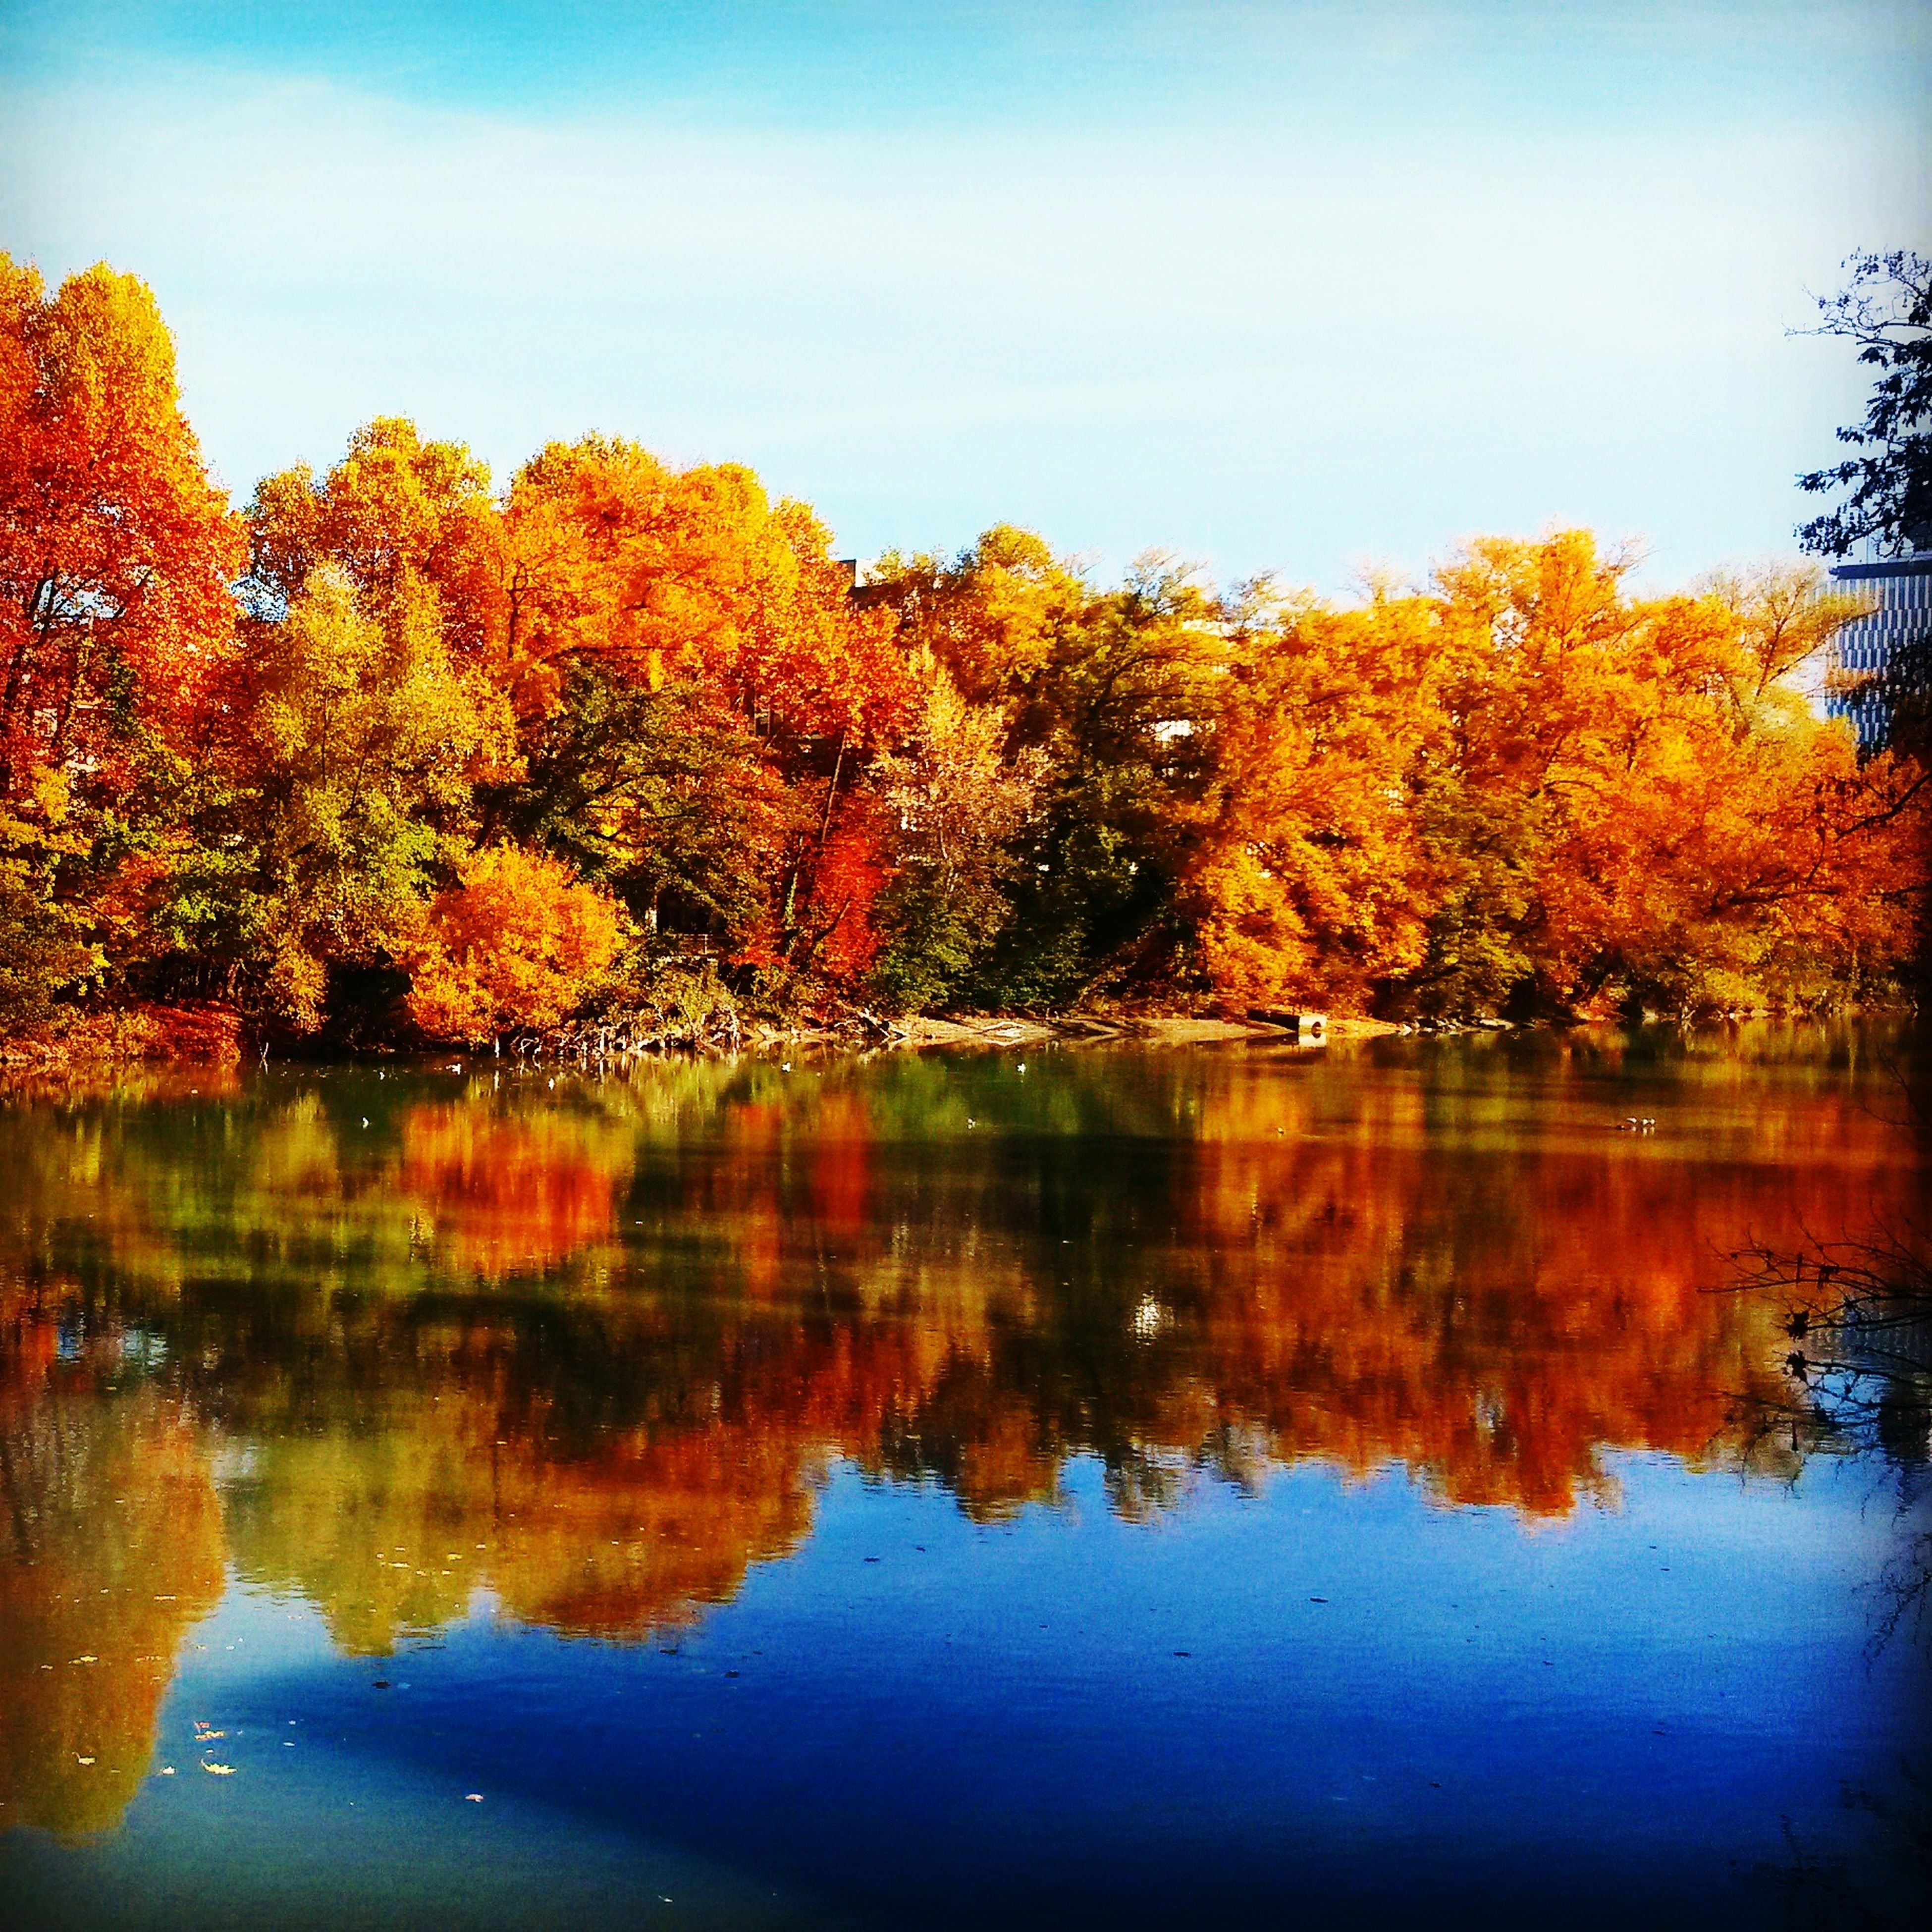 tree, autumn, reflection, nature, beauty in nature, change, lake, water, scenics, tranquil scene, no people, tranquility, sky, leaf, outdoors, day